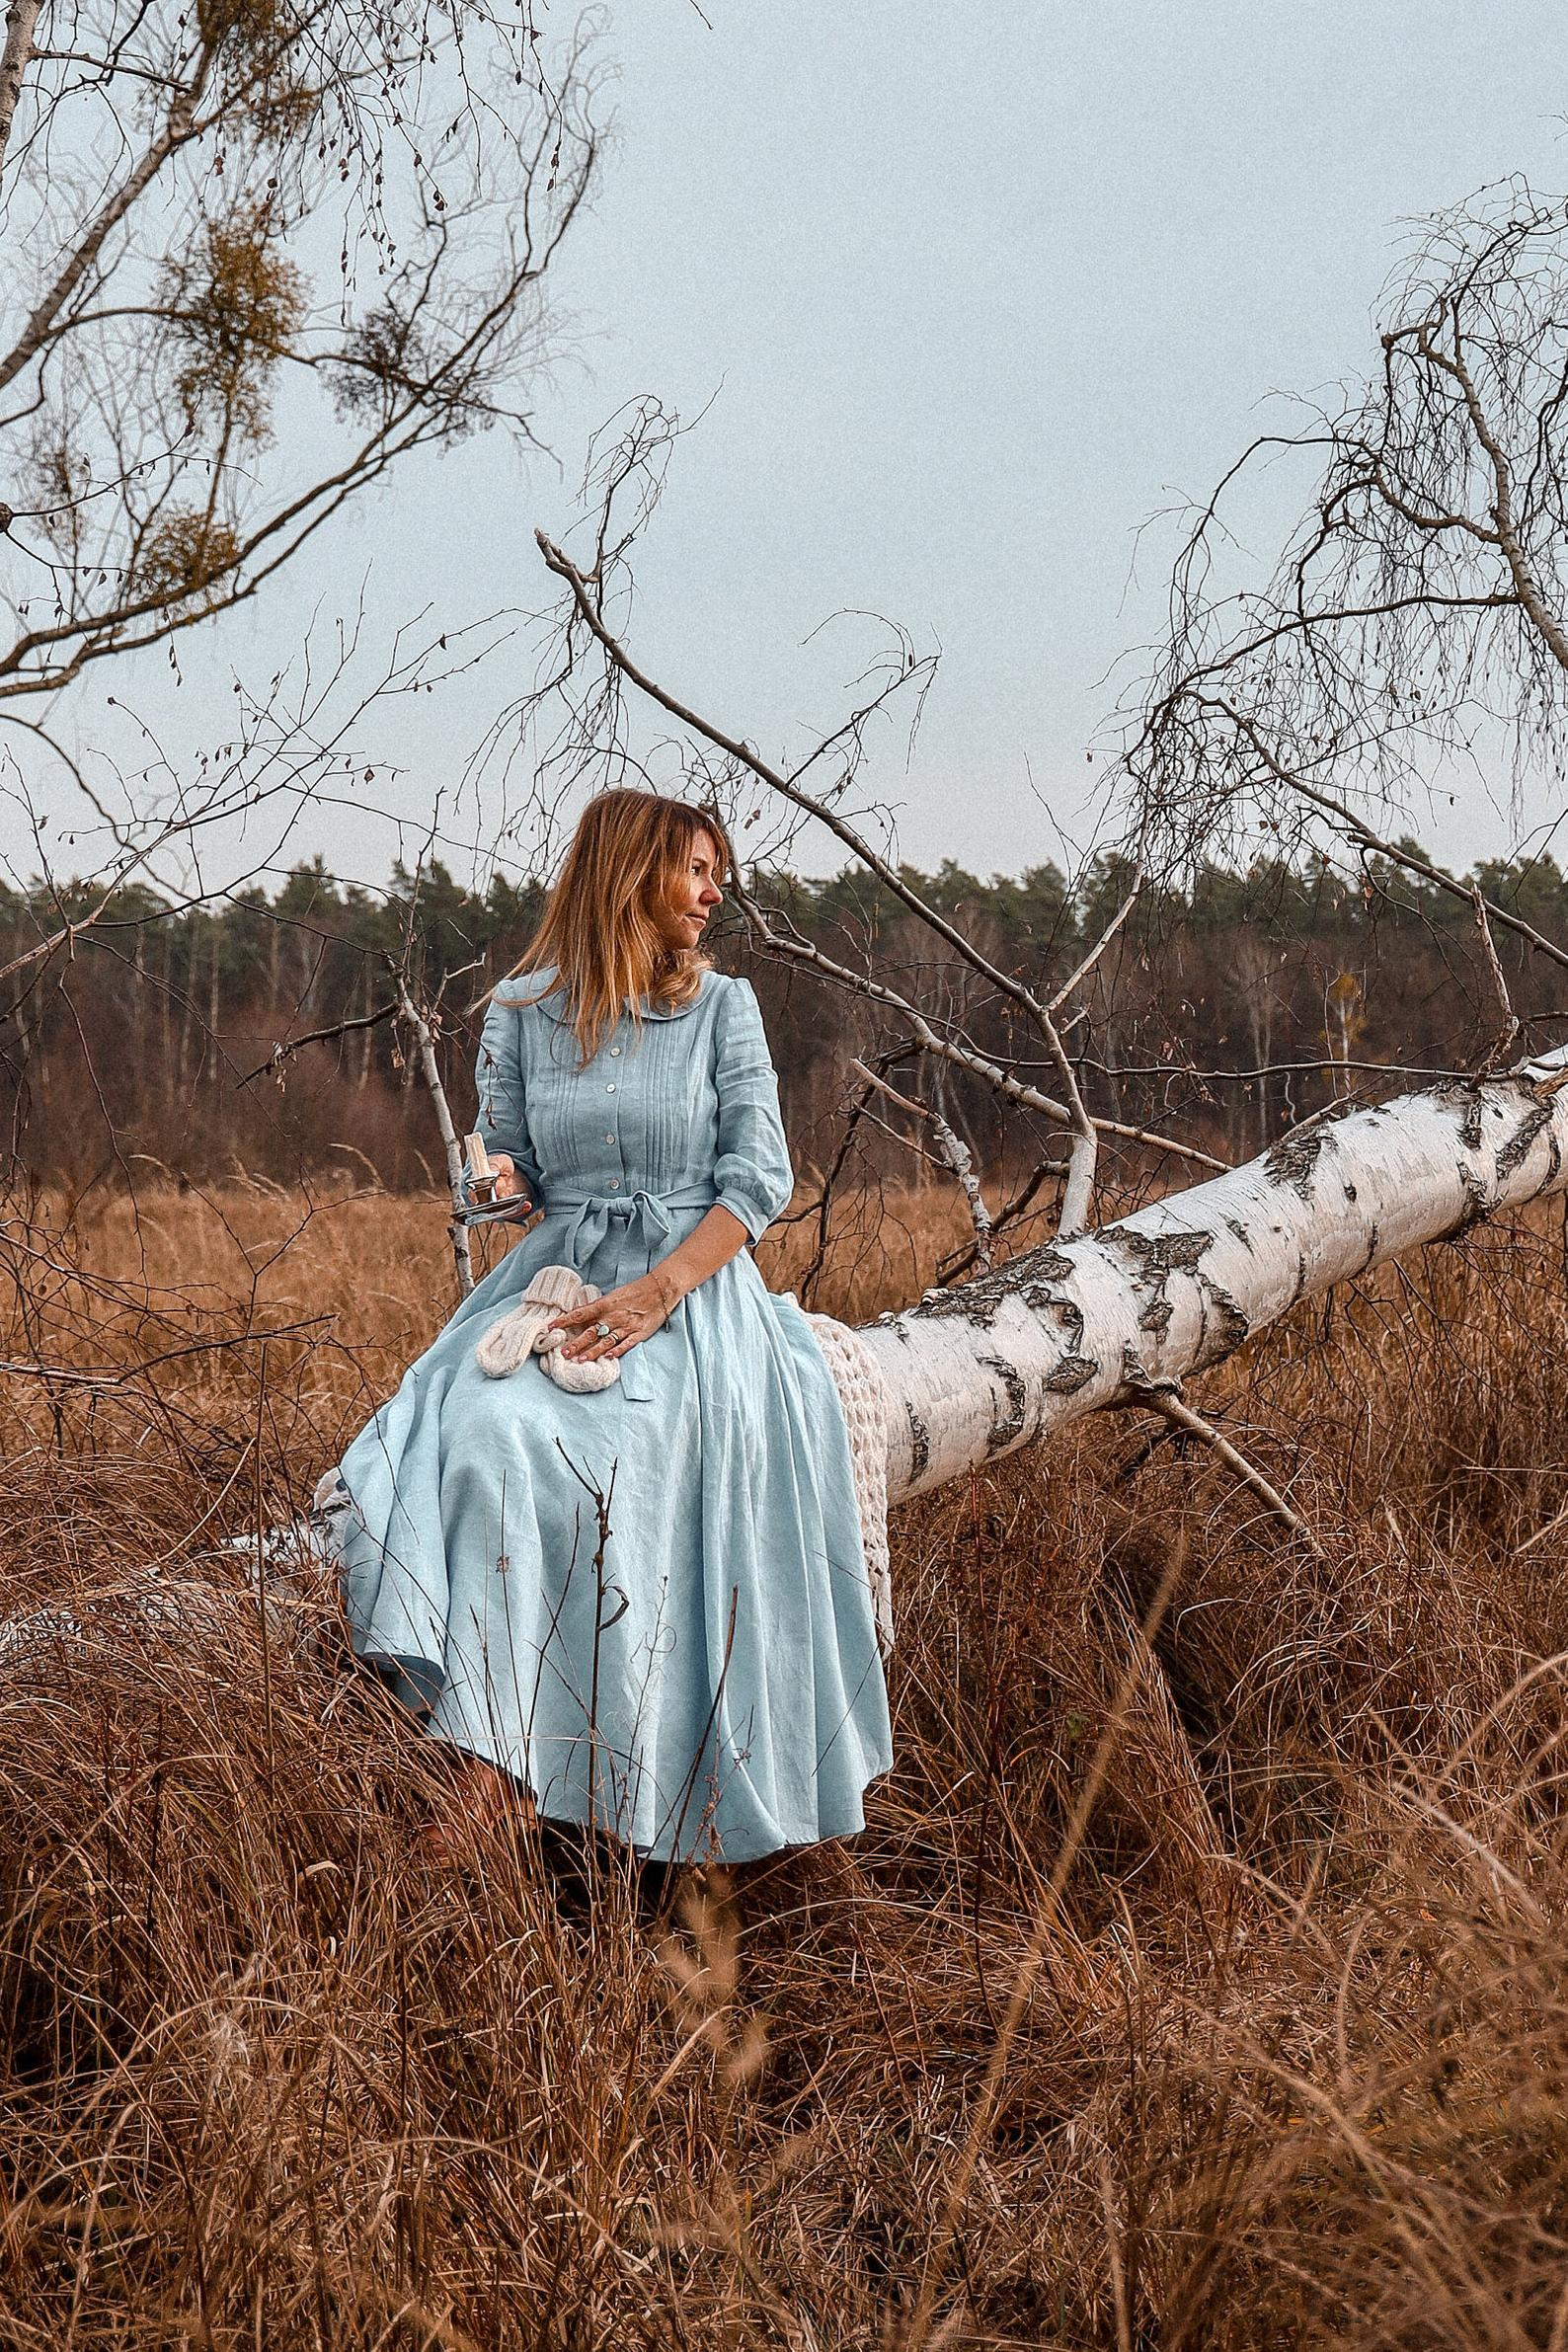 A woman wear an icy blue dress with a full skirt, 3/4 length sleeves, and a peter pan collar sitting on an overturned Burch tree best cottagecore dresses